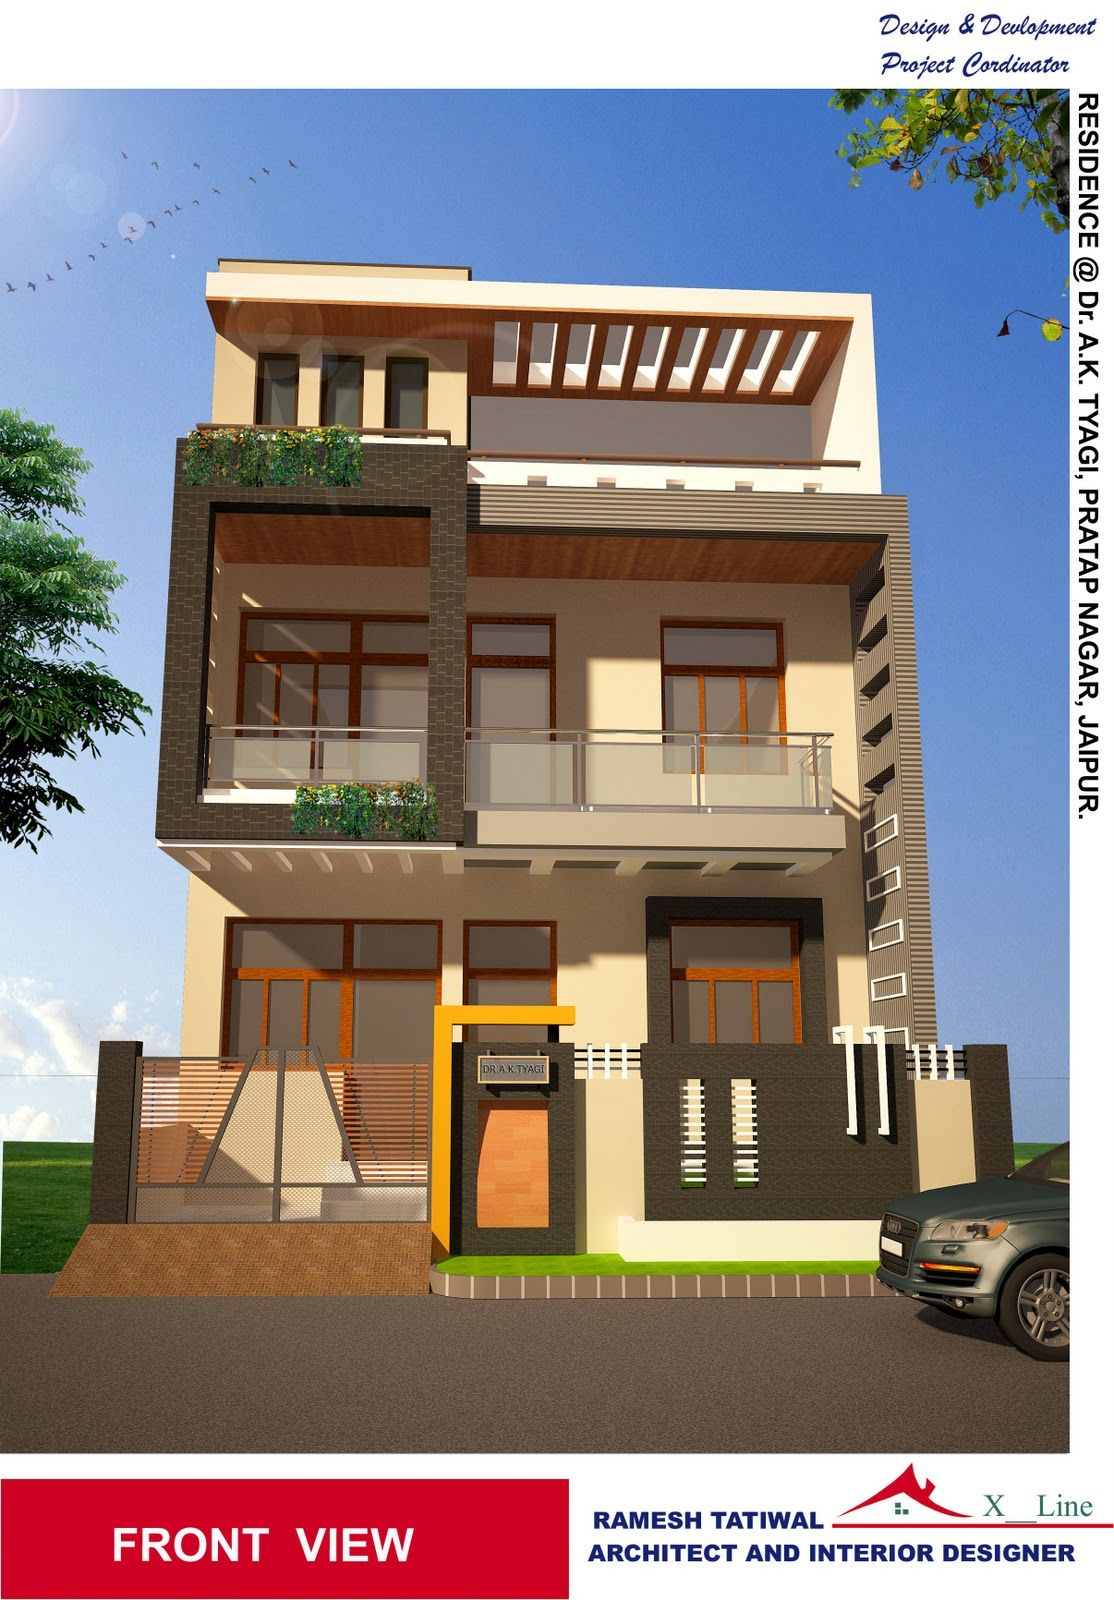 Housedesigns modern indian home architecture design from for Contemporary home designs india